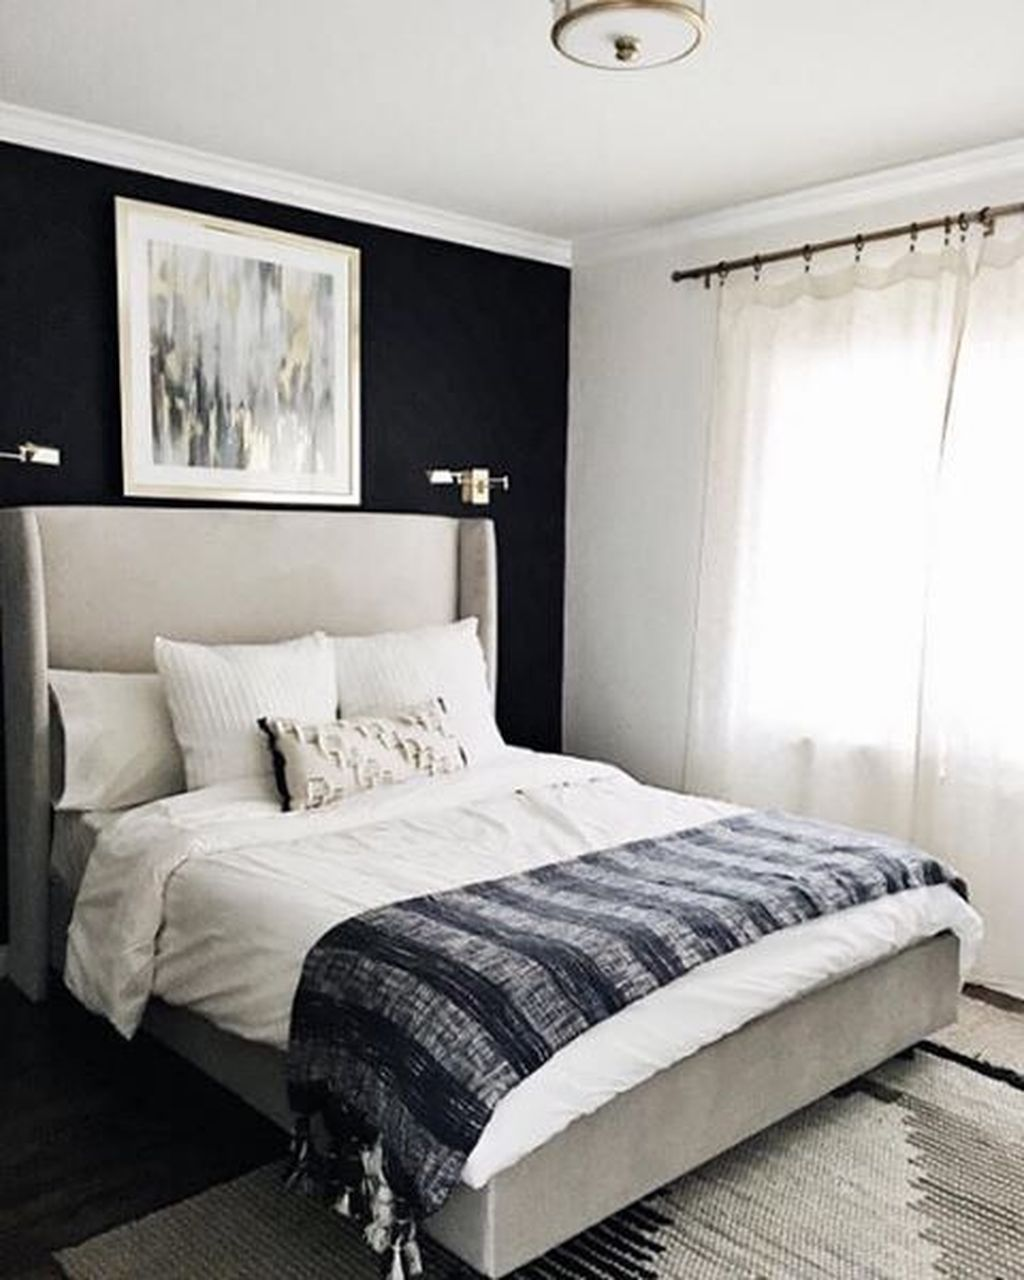 Bedroom Black Accents 49 Lovely Black Accent Walls Bedrooms Ideas Black Walls Bedroom Accent Wall Bedroom Black Accent Walls